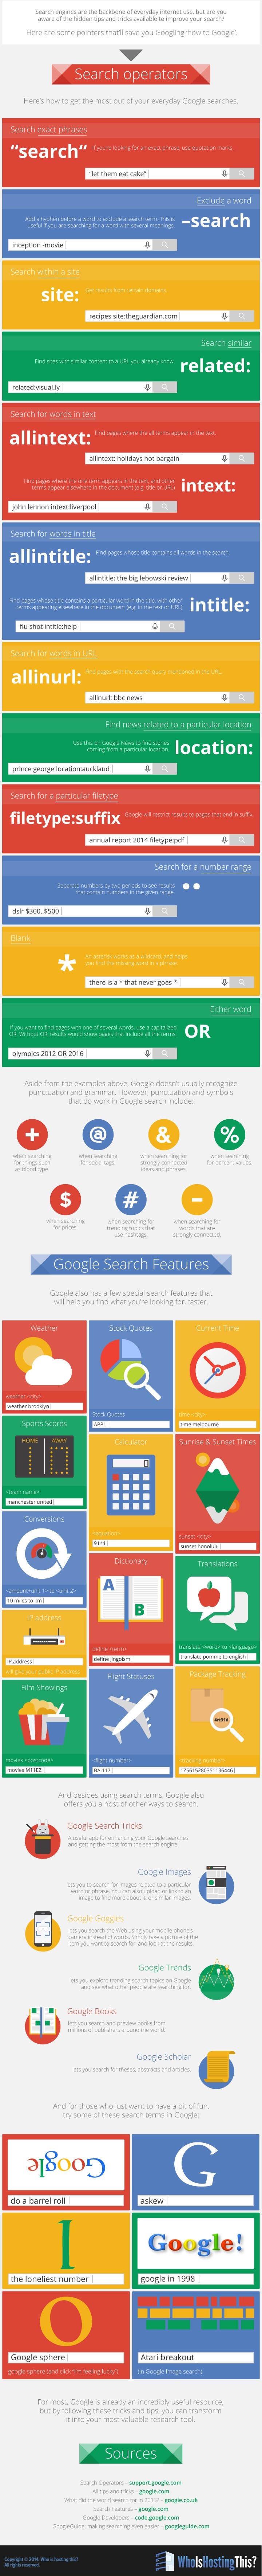 Pro Tips for expert Google searches